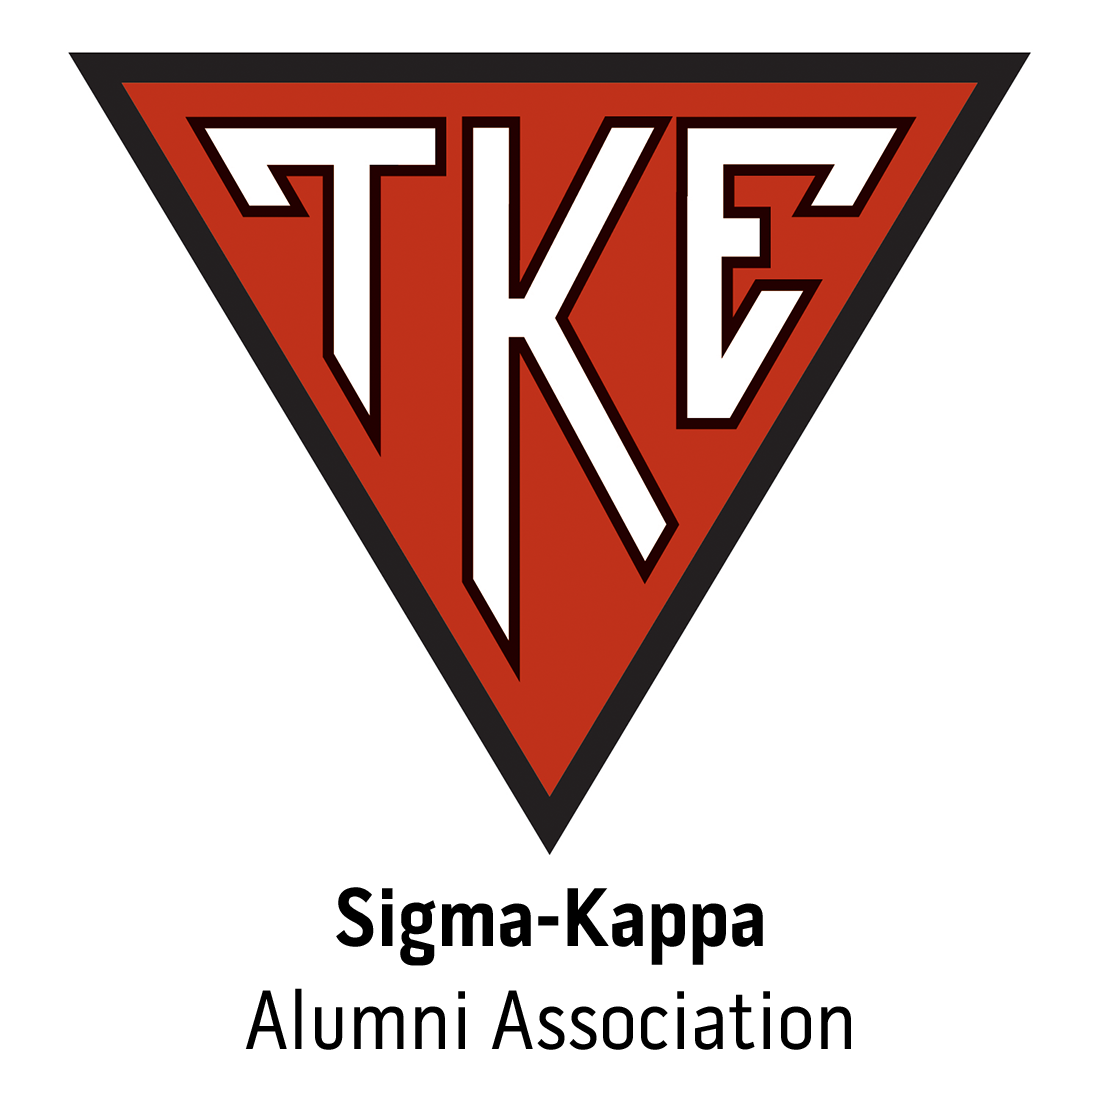 Sigma-Kappa Alumni Association at Merrimack College